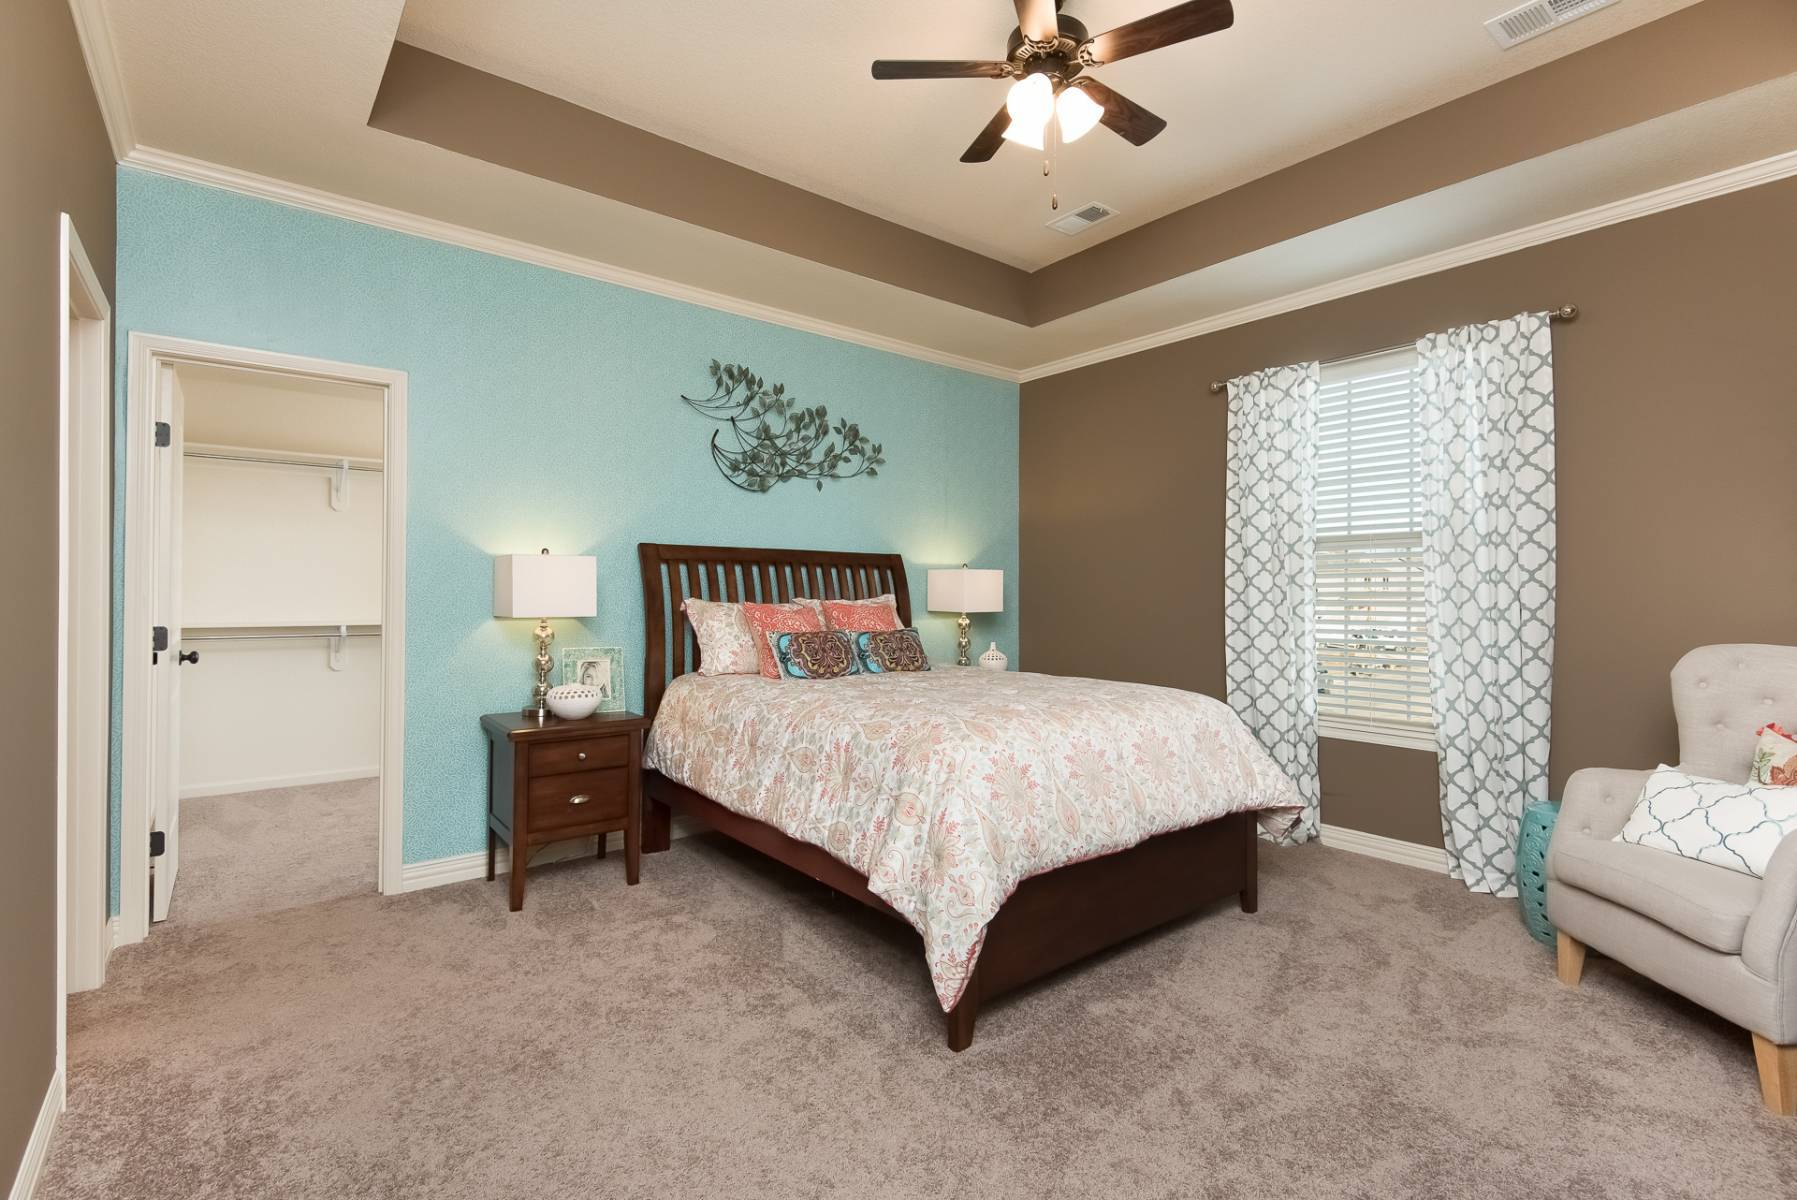 Bedroom featured in the Palmer By Summit Homes in Kansas City, MO